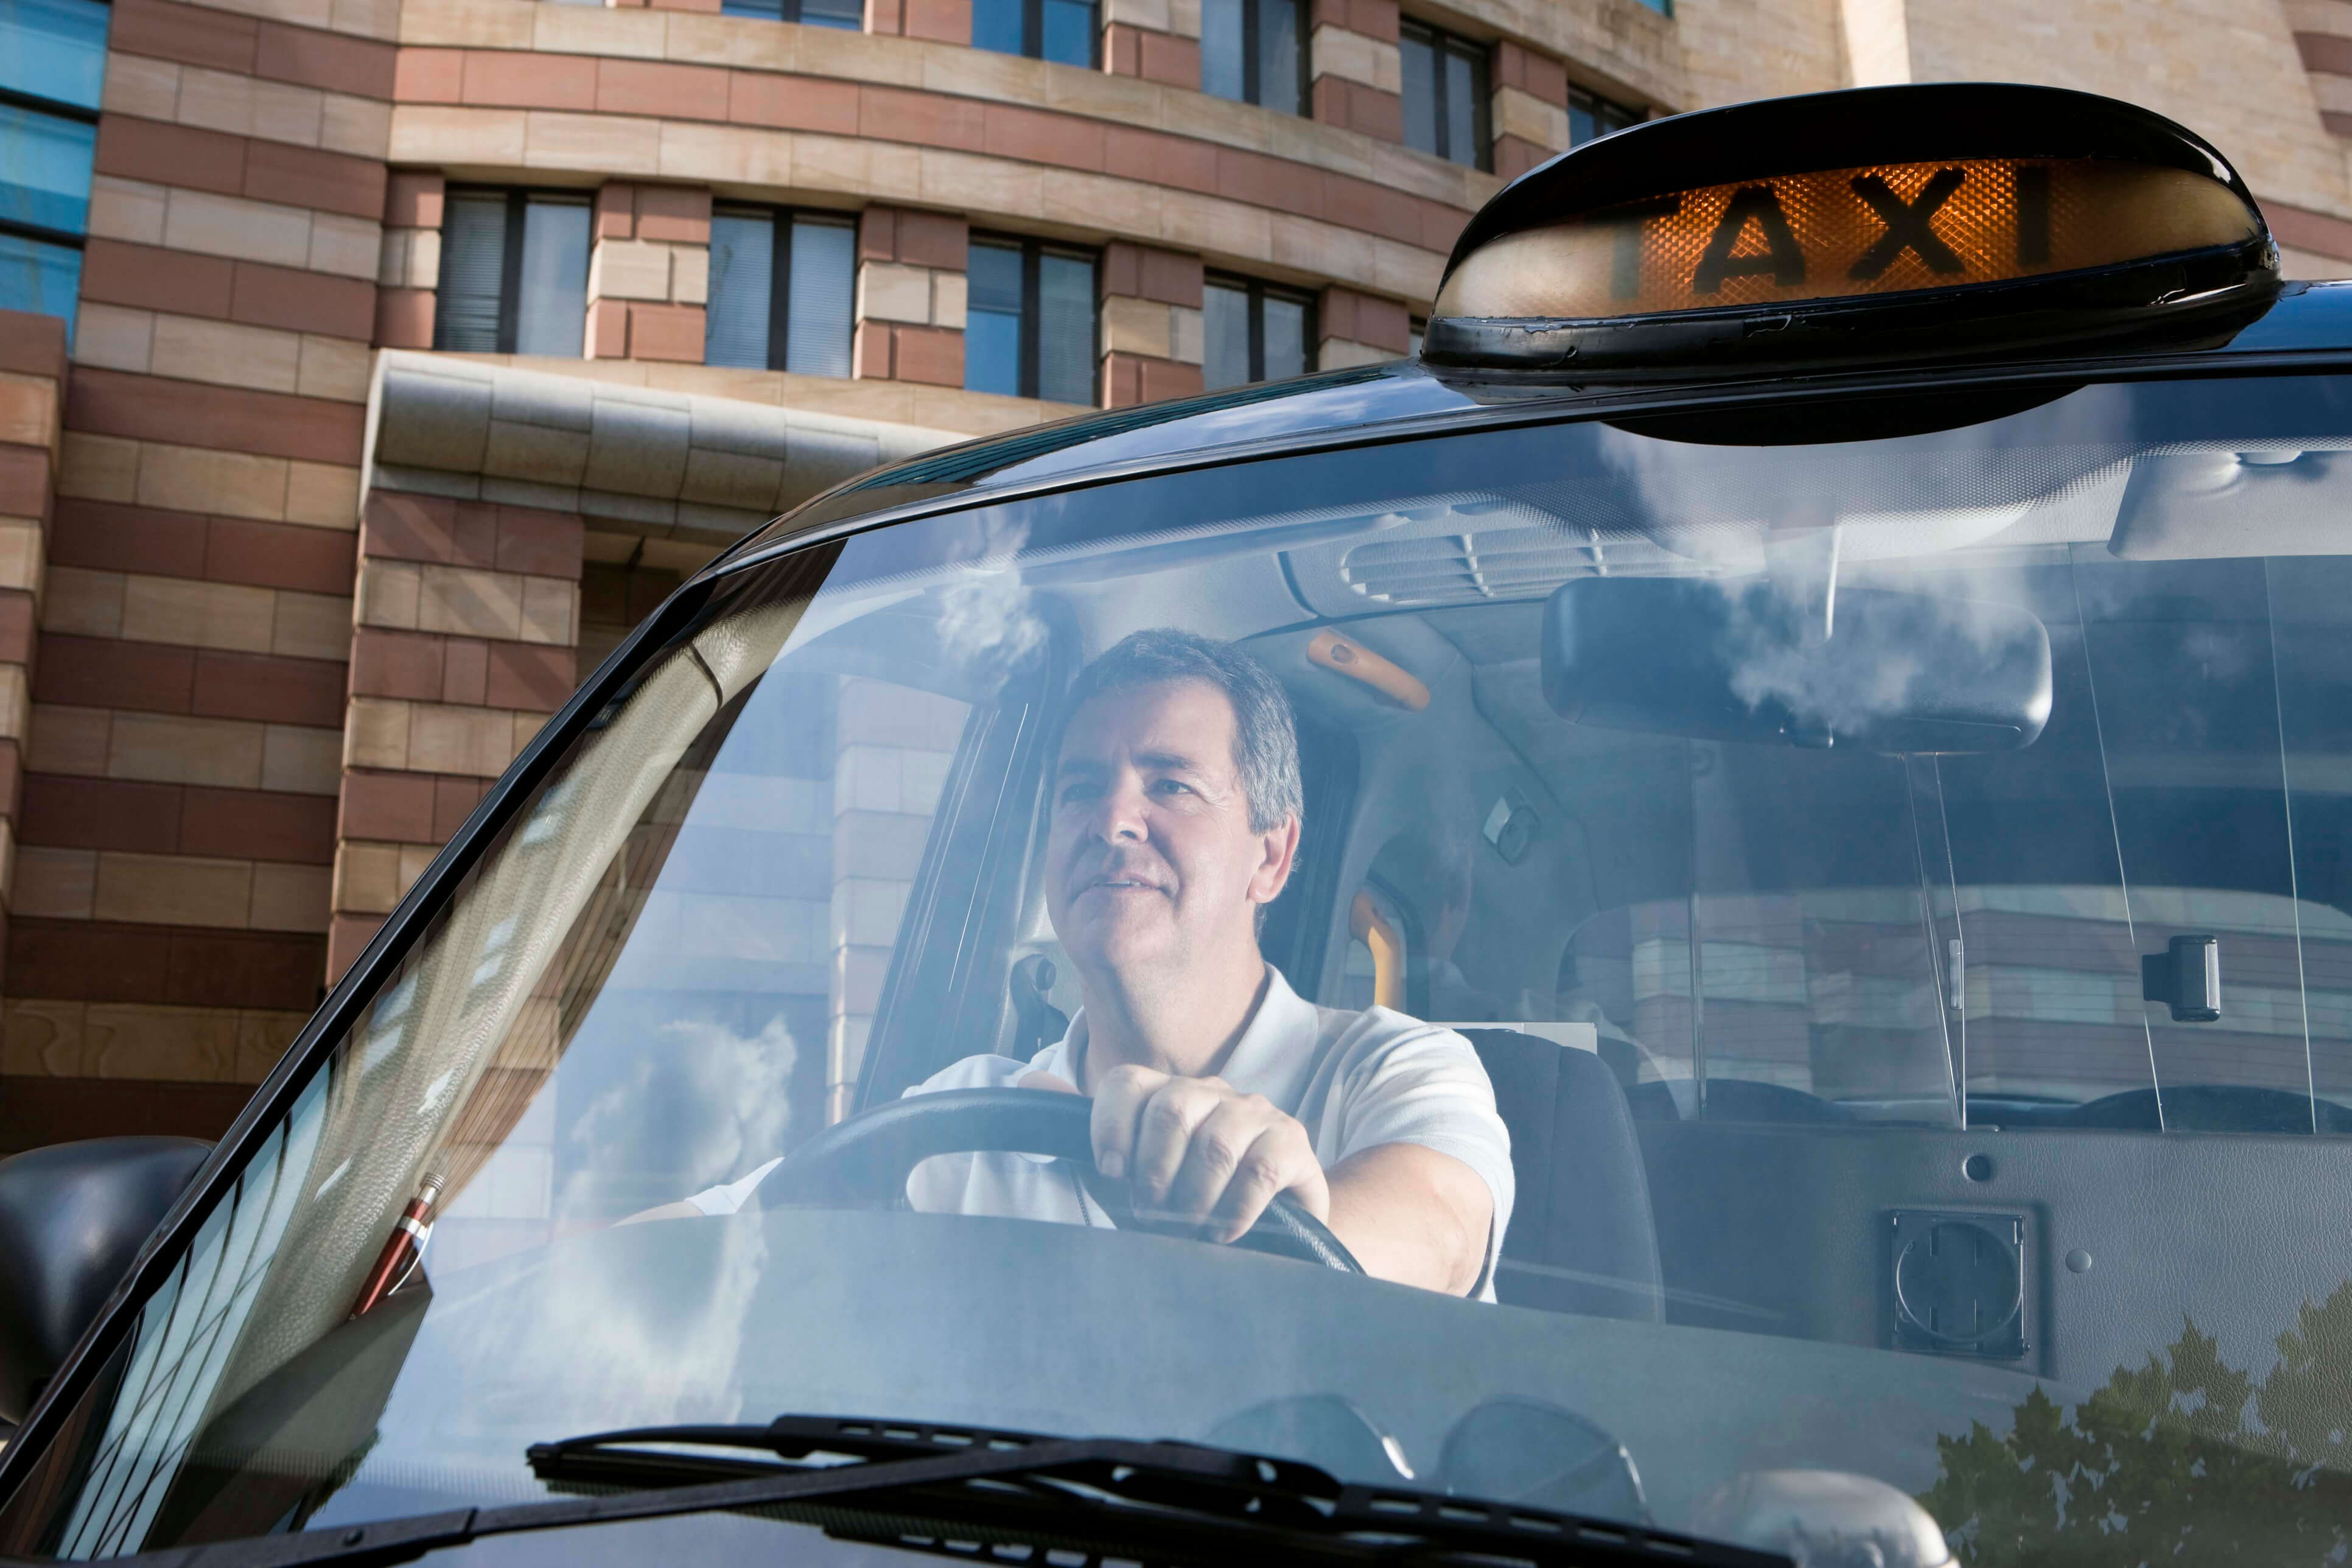 A London taxi driver smiling as he drives his black cab